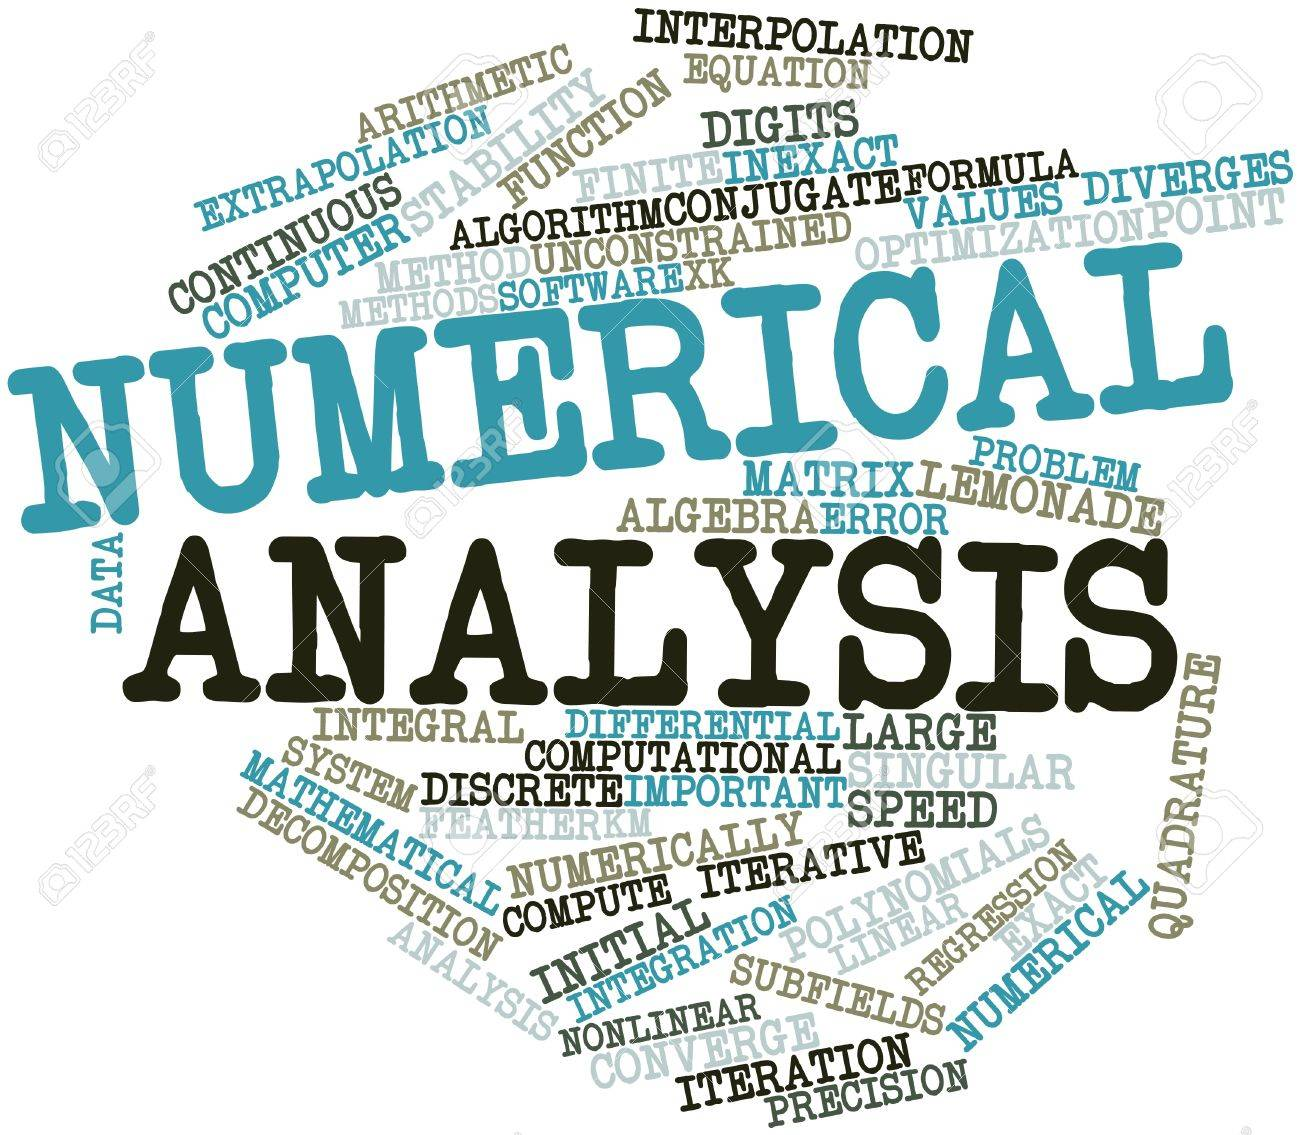 MA214 - Introduction to Numerical Analysis